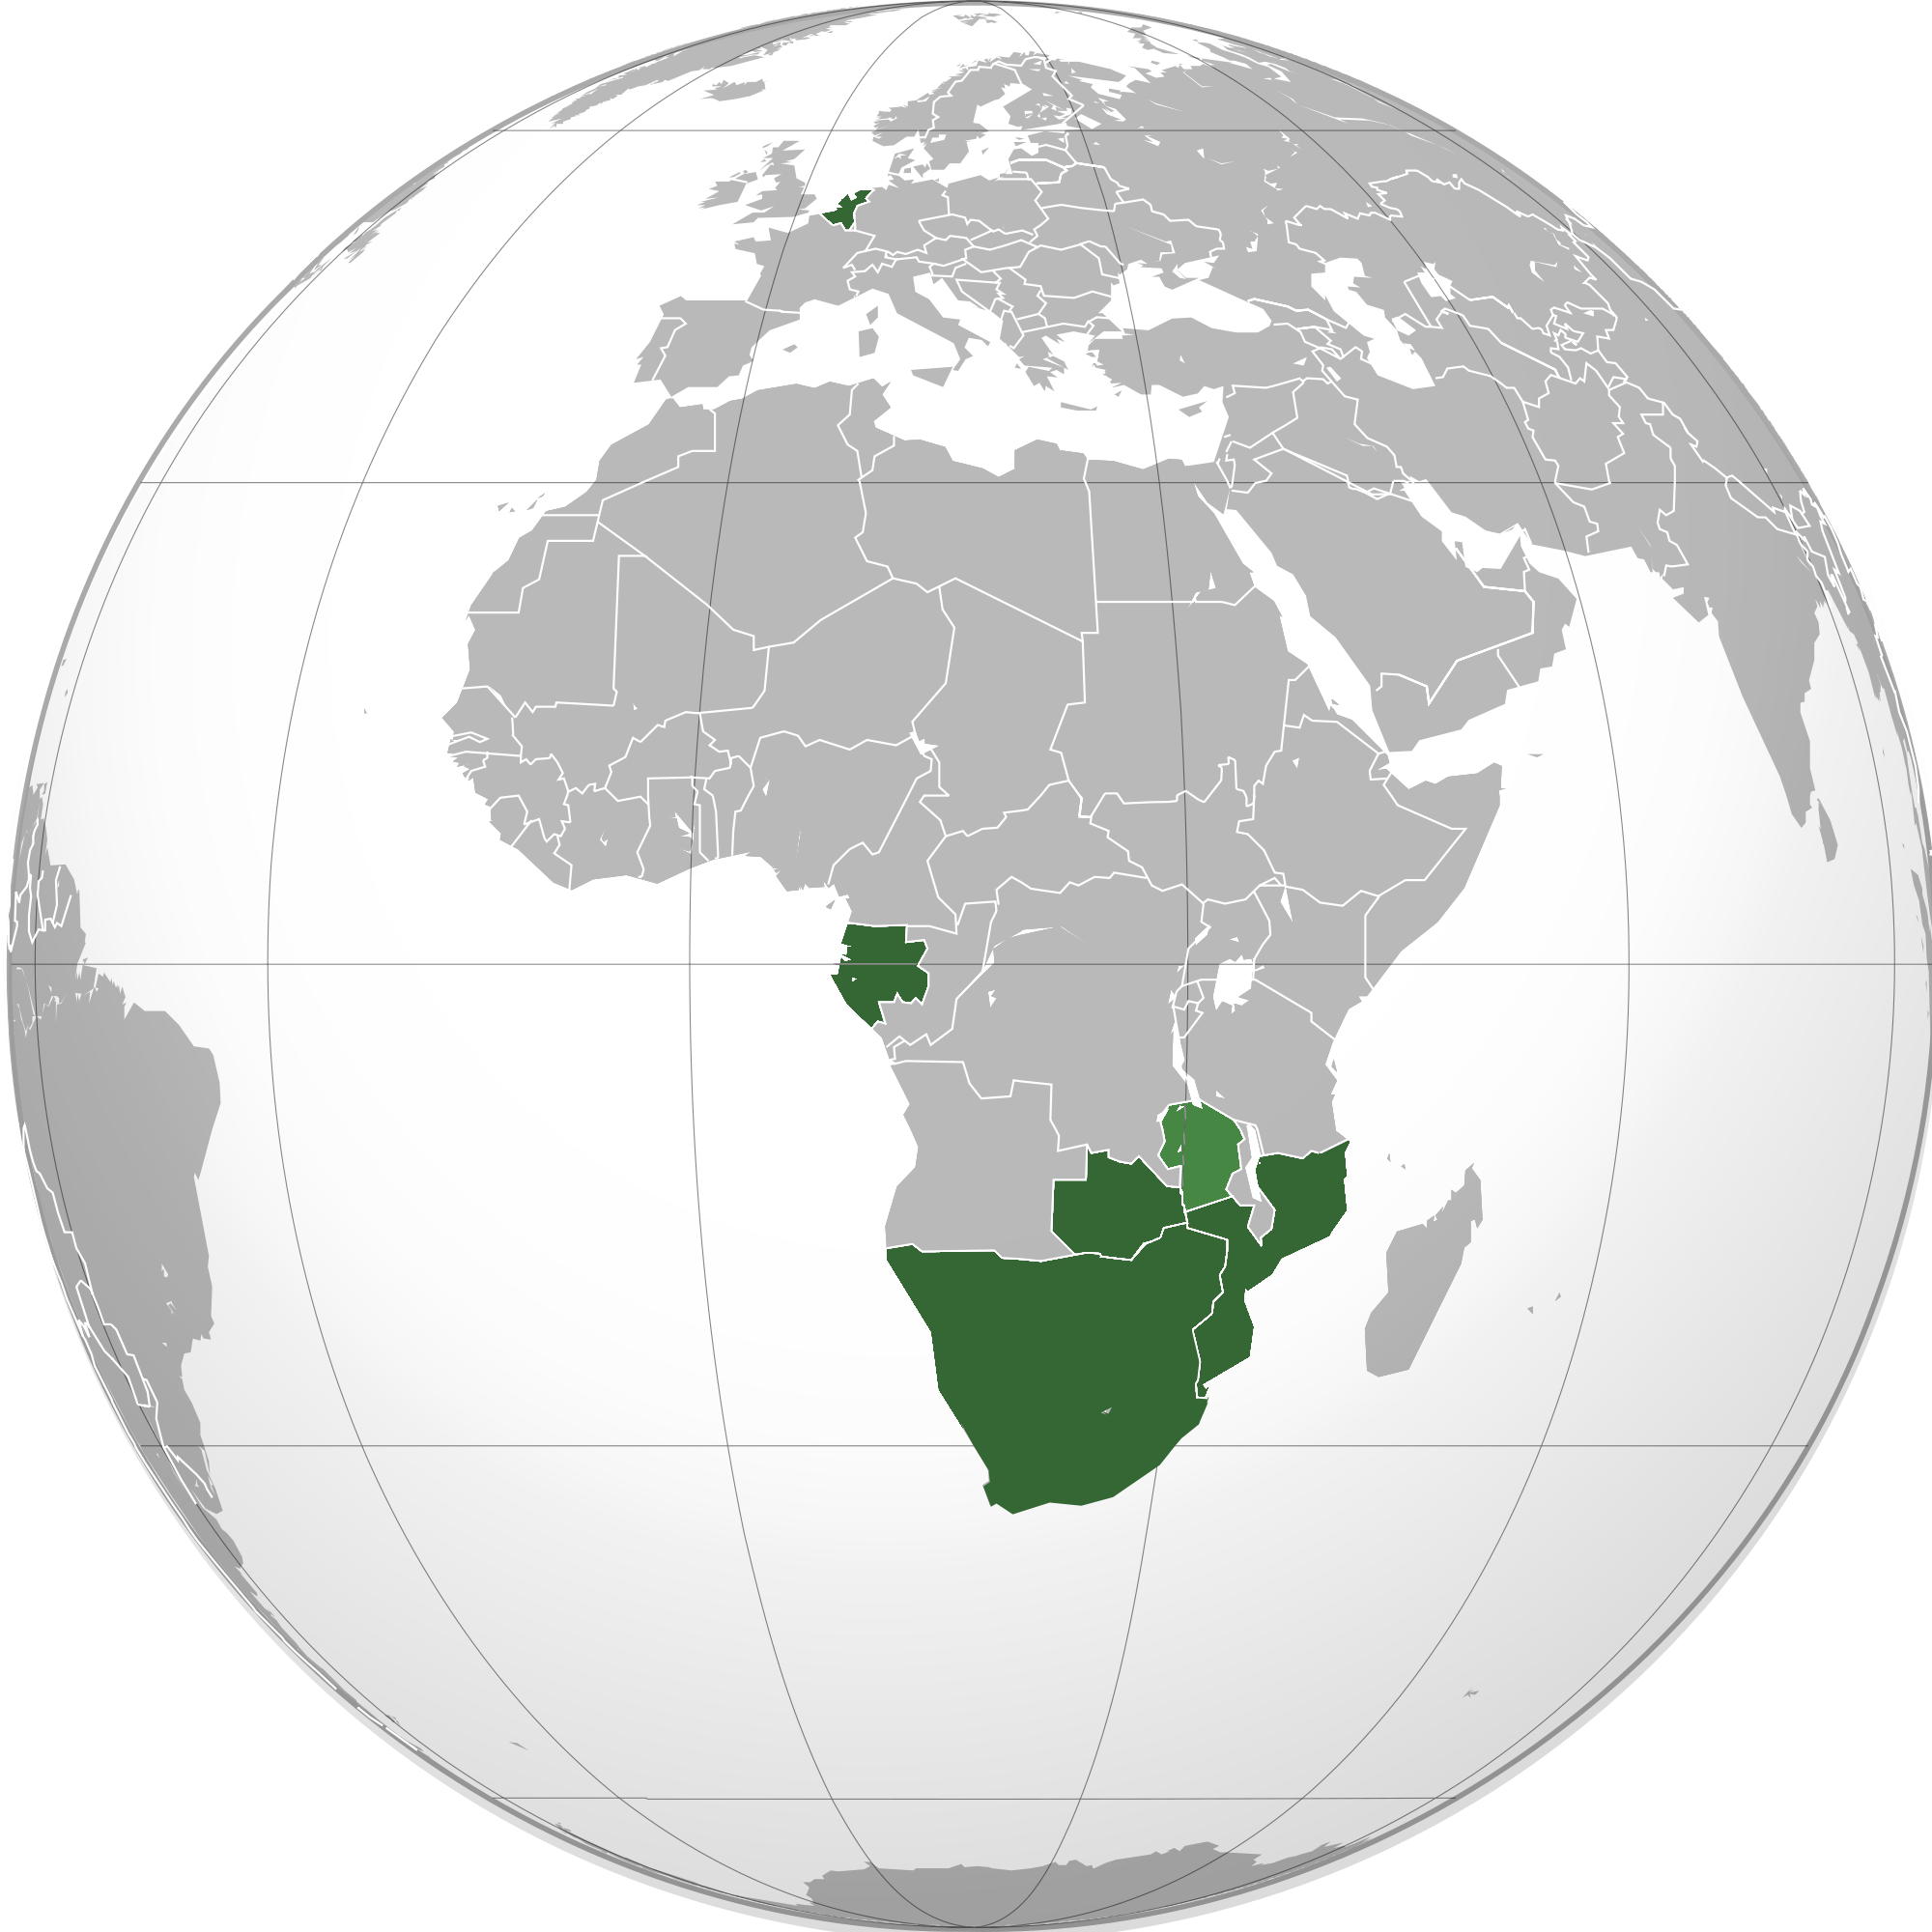 South Africa Map Game.South Africa Night Of The Living Alternate History Map Game